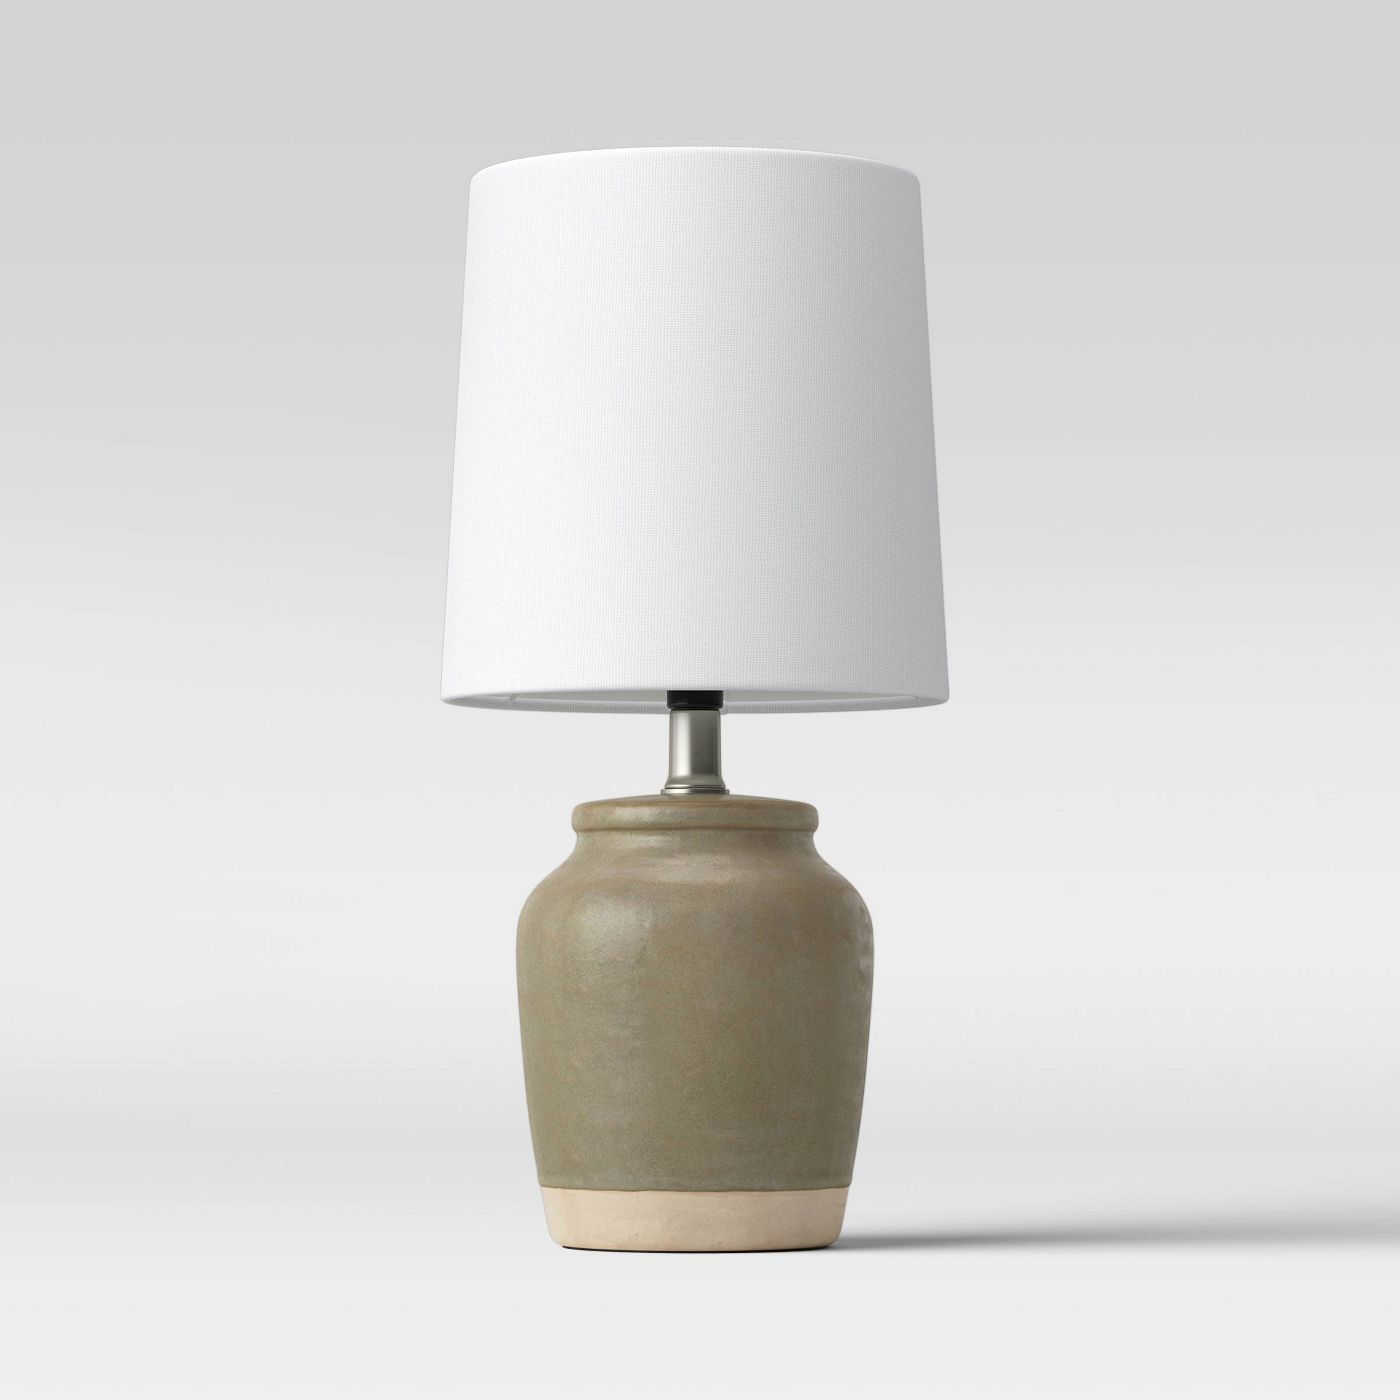 Green Pottery Mini Accent Lamp - Target